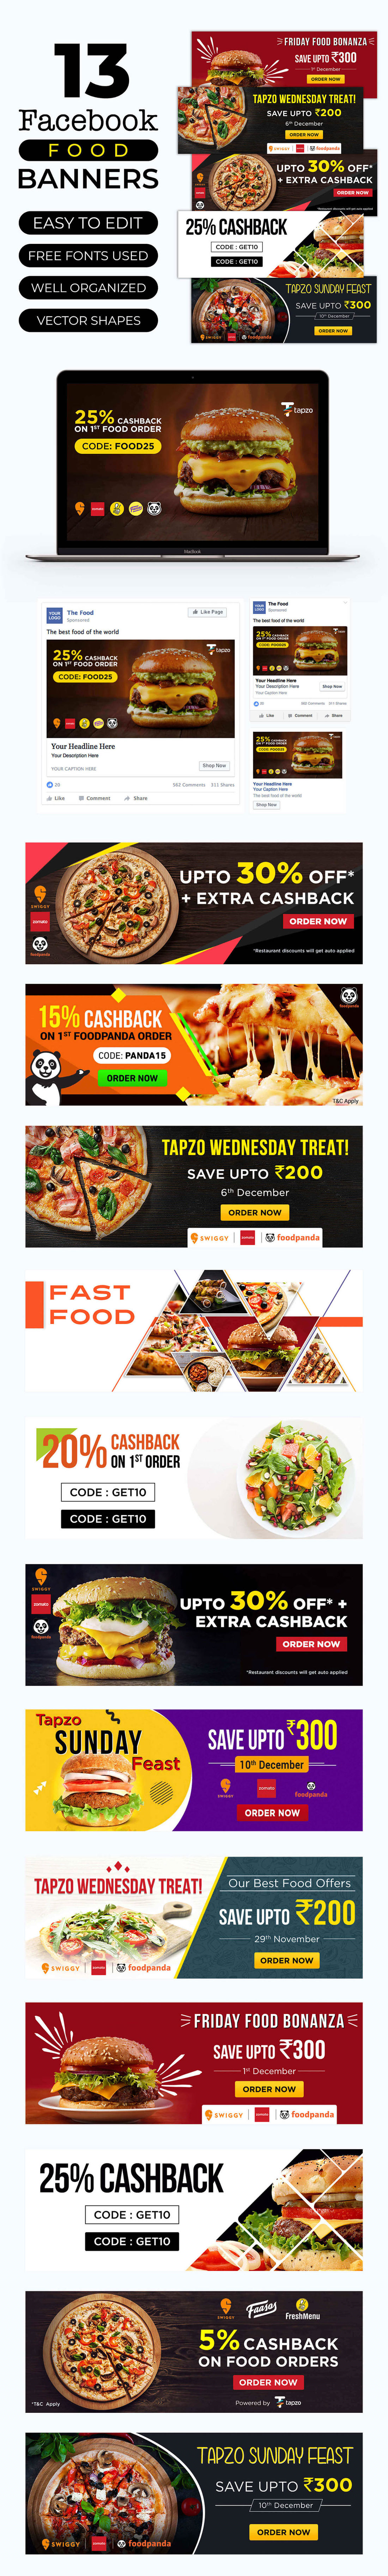 Facebook Food Banner Templates by Navin GuptaFacebook Food Banner Templates